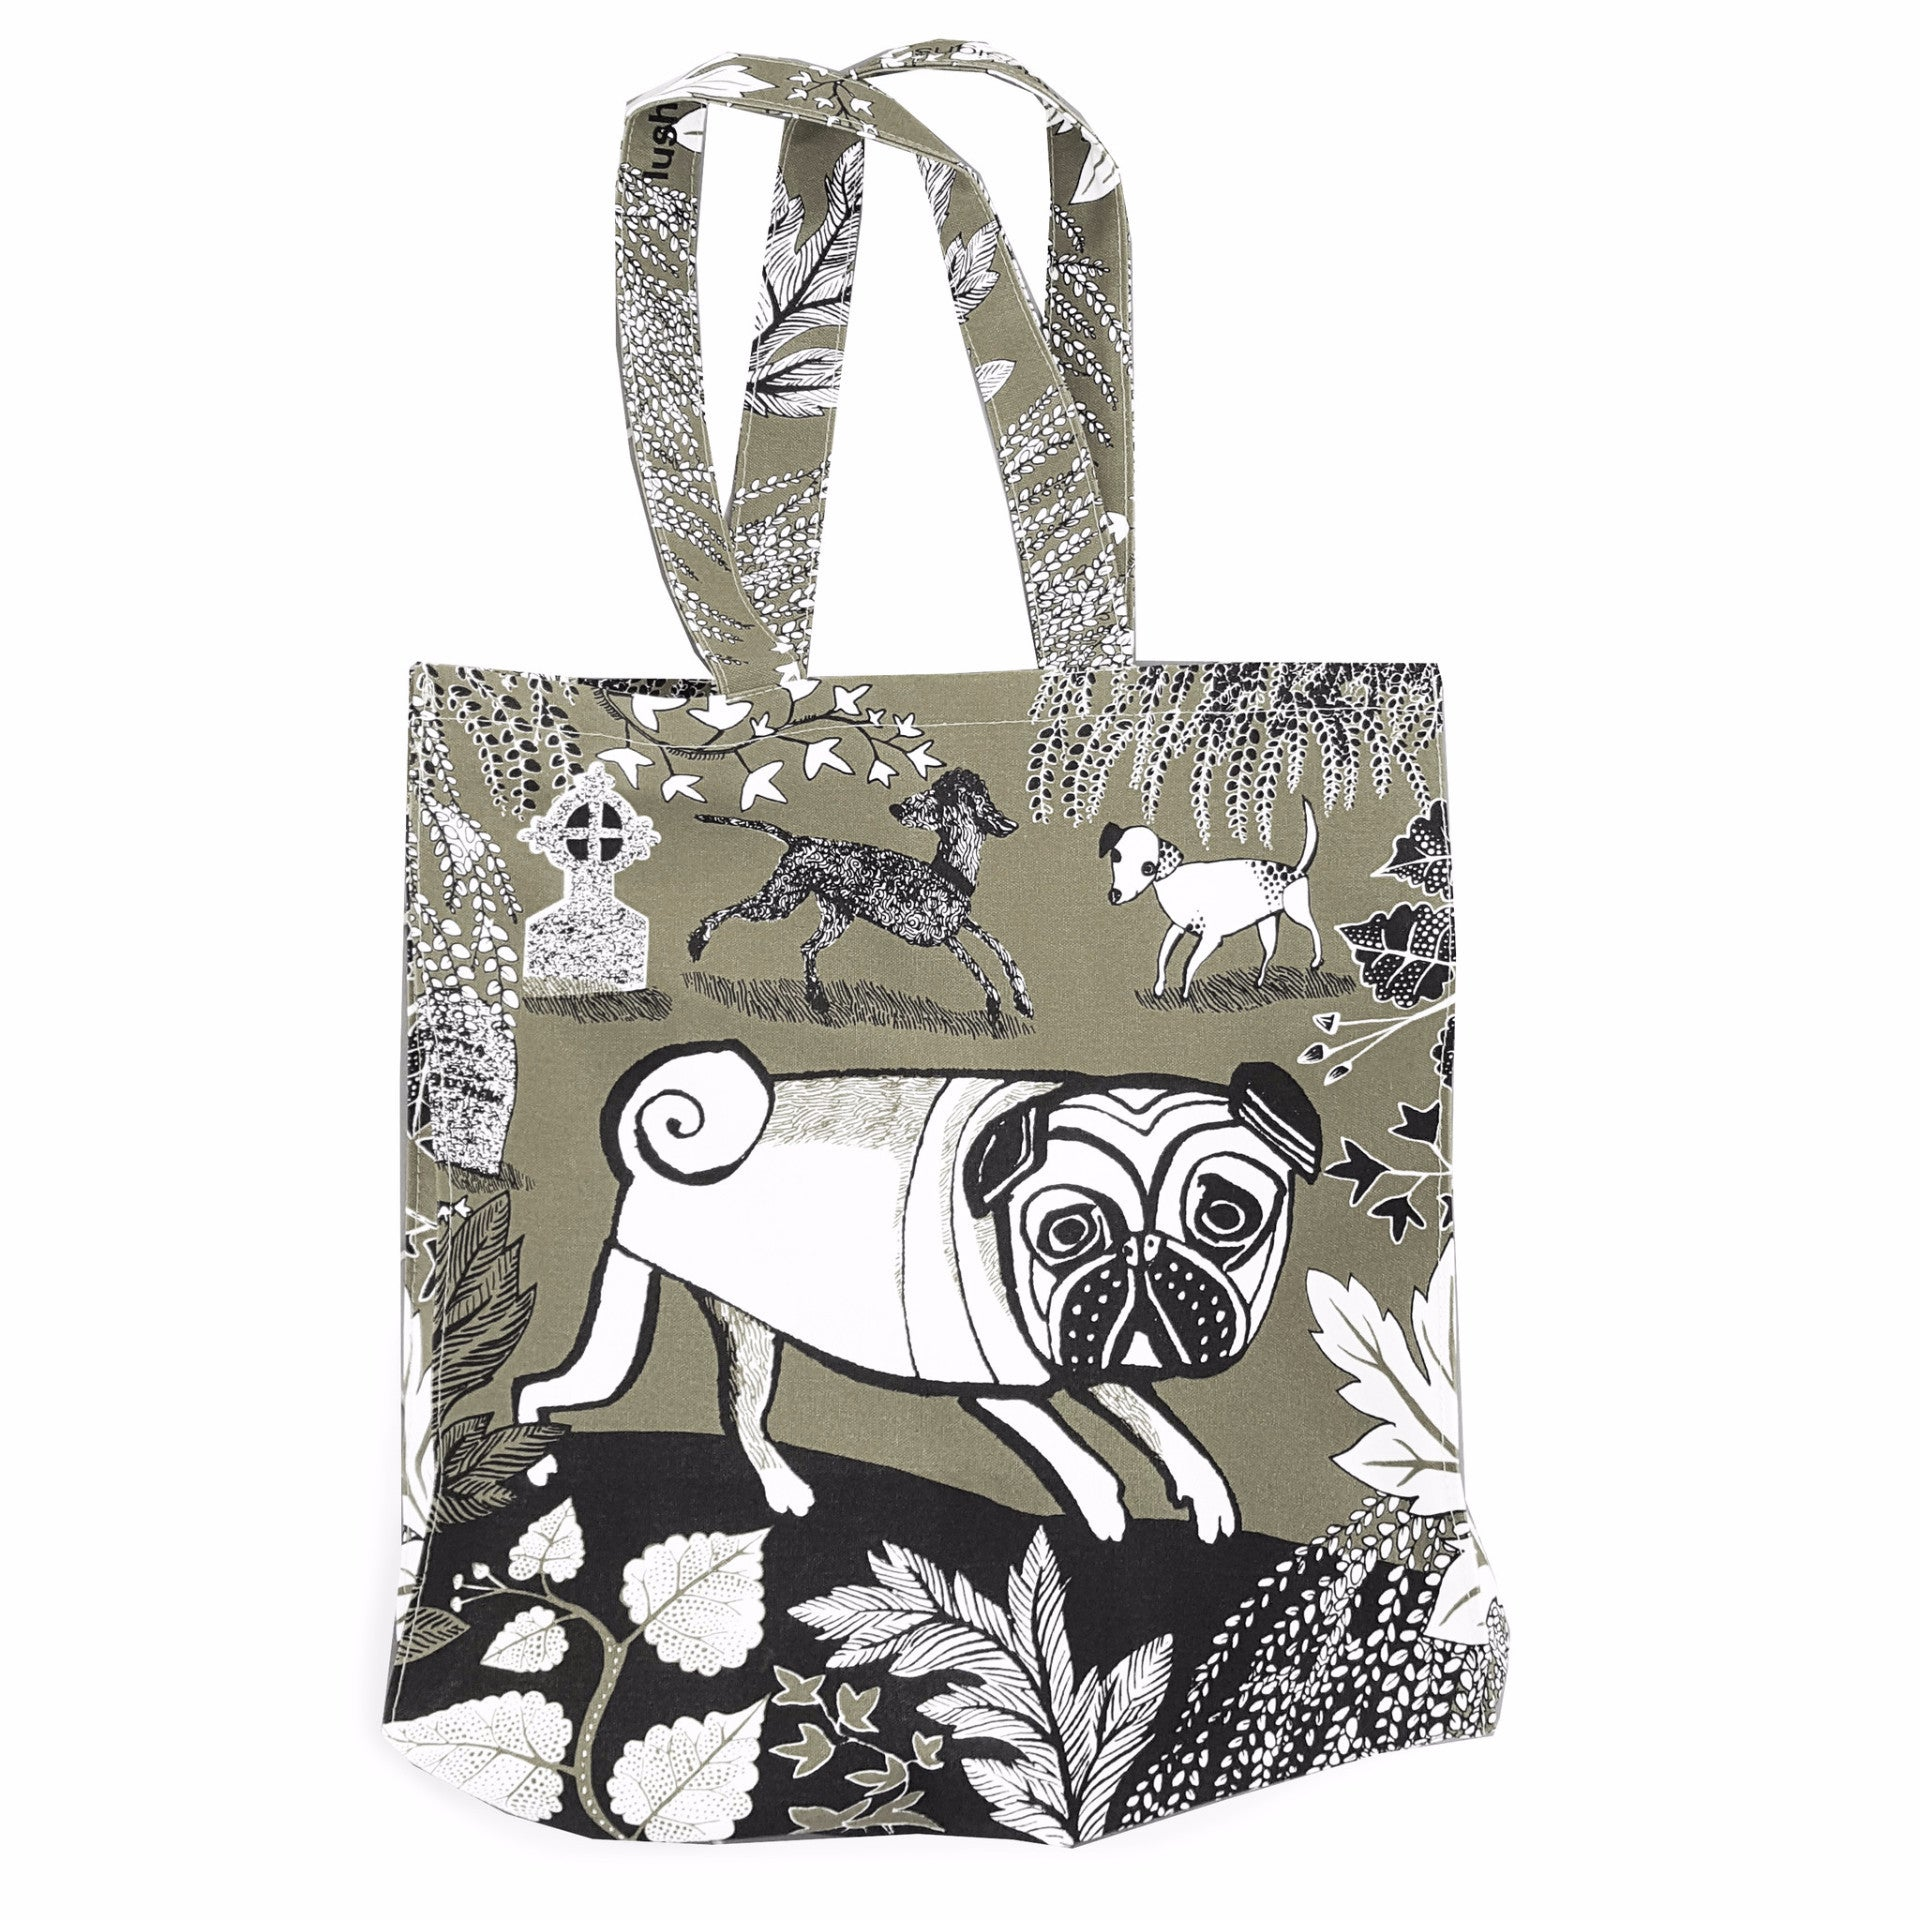 Lush Designs dog print bag with flossie the pug, Bedlington lurcher truffy and little spotty Dottie